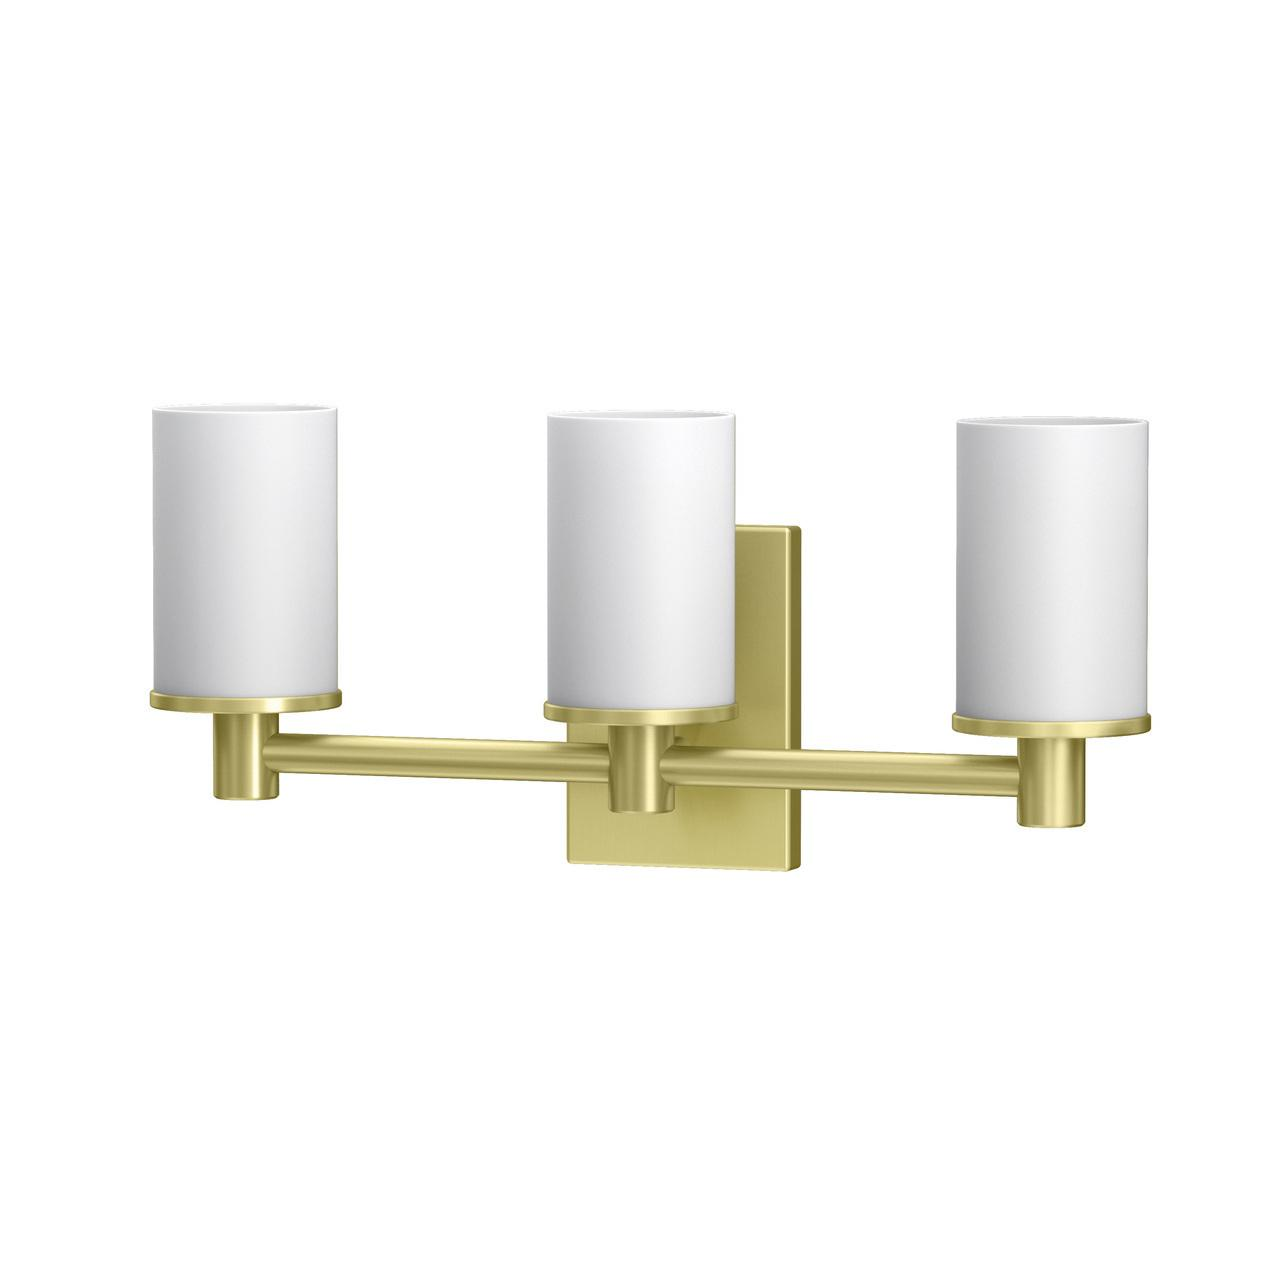 Additional Modern Farmhouse Lighting Sconces in Chrome